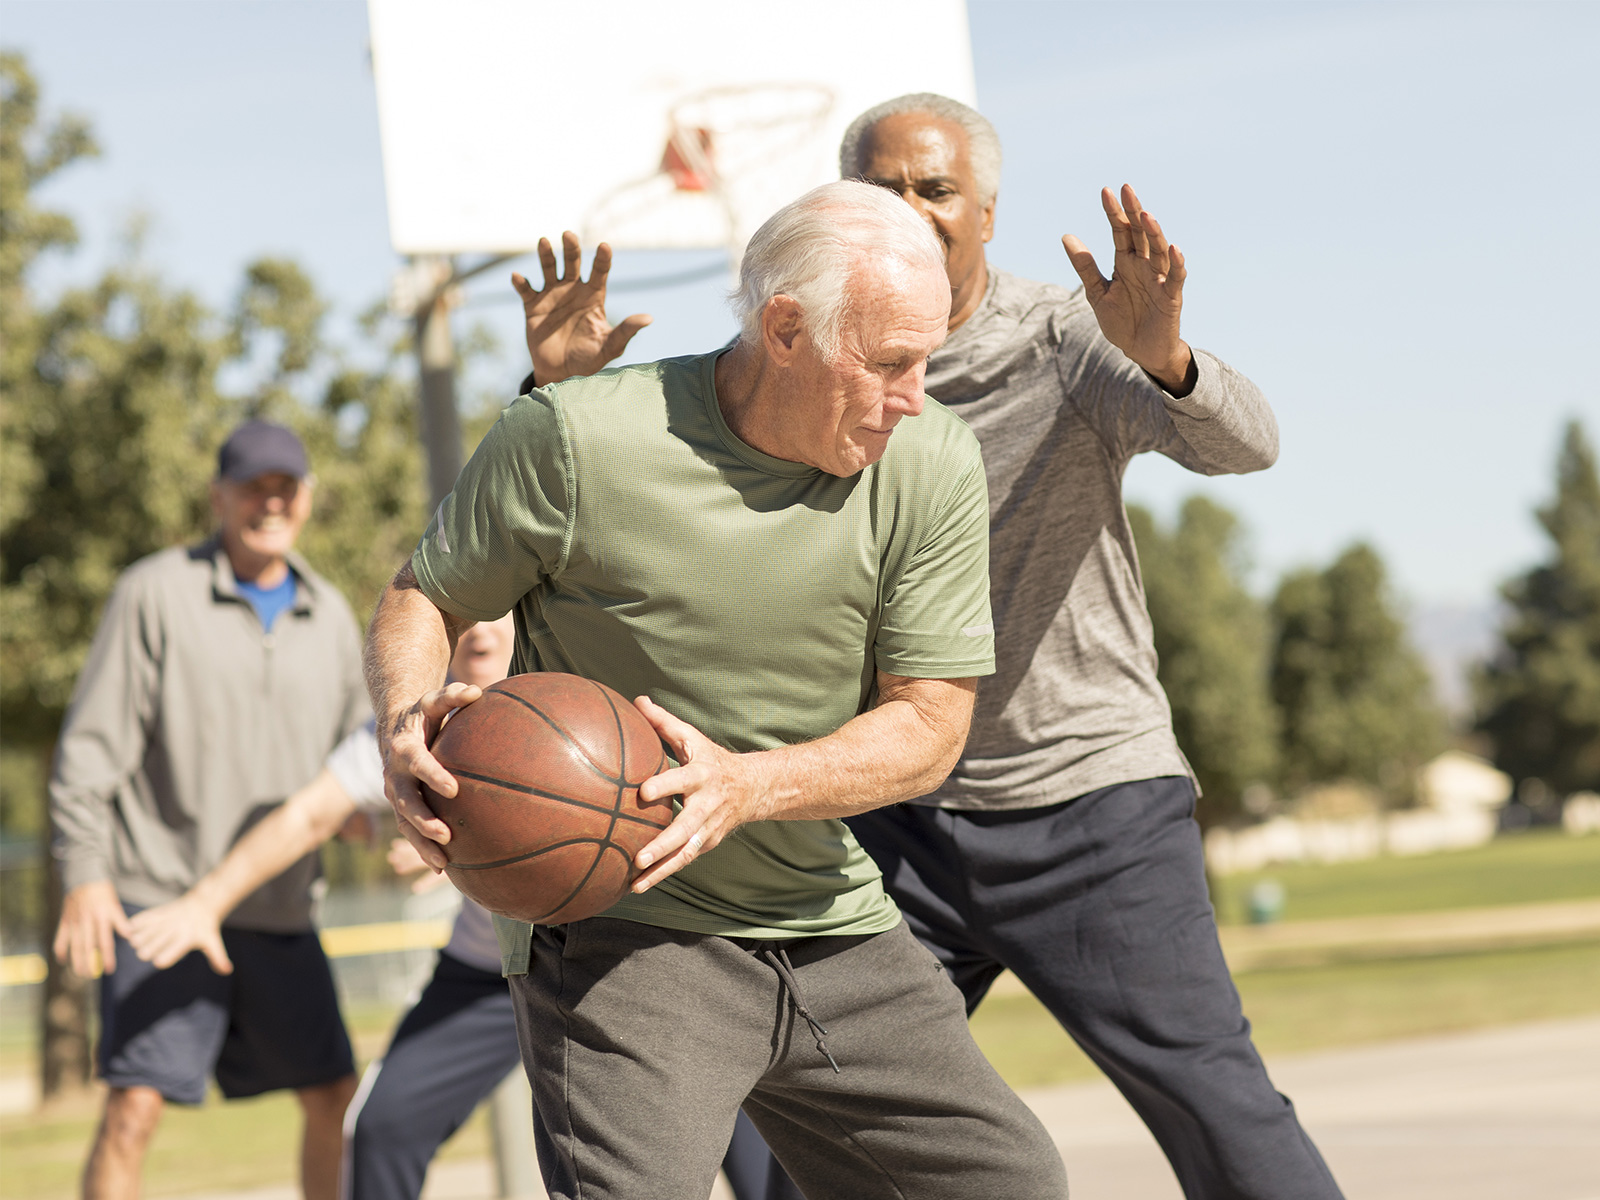 a group of men play a pickup game of basketball in the park